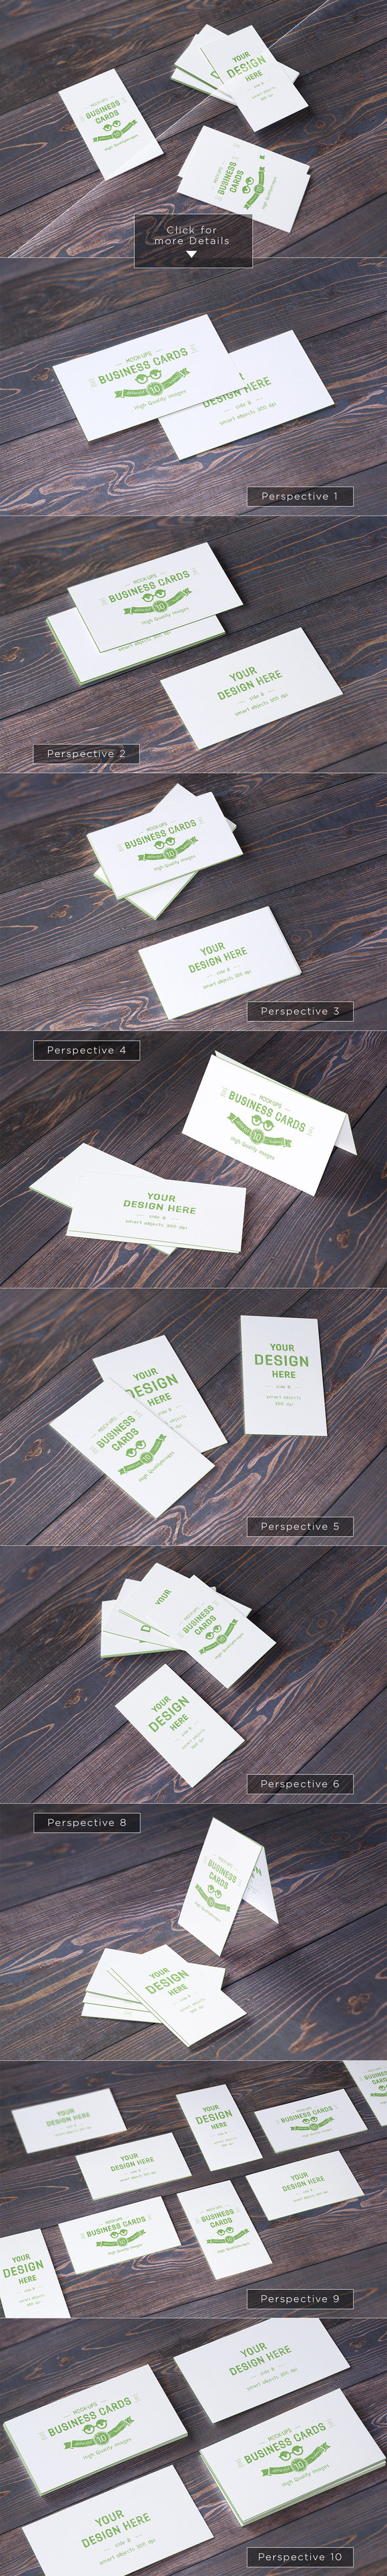 10 Realistic Business Card Mock-up S